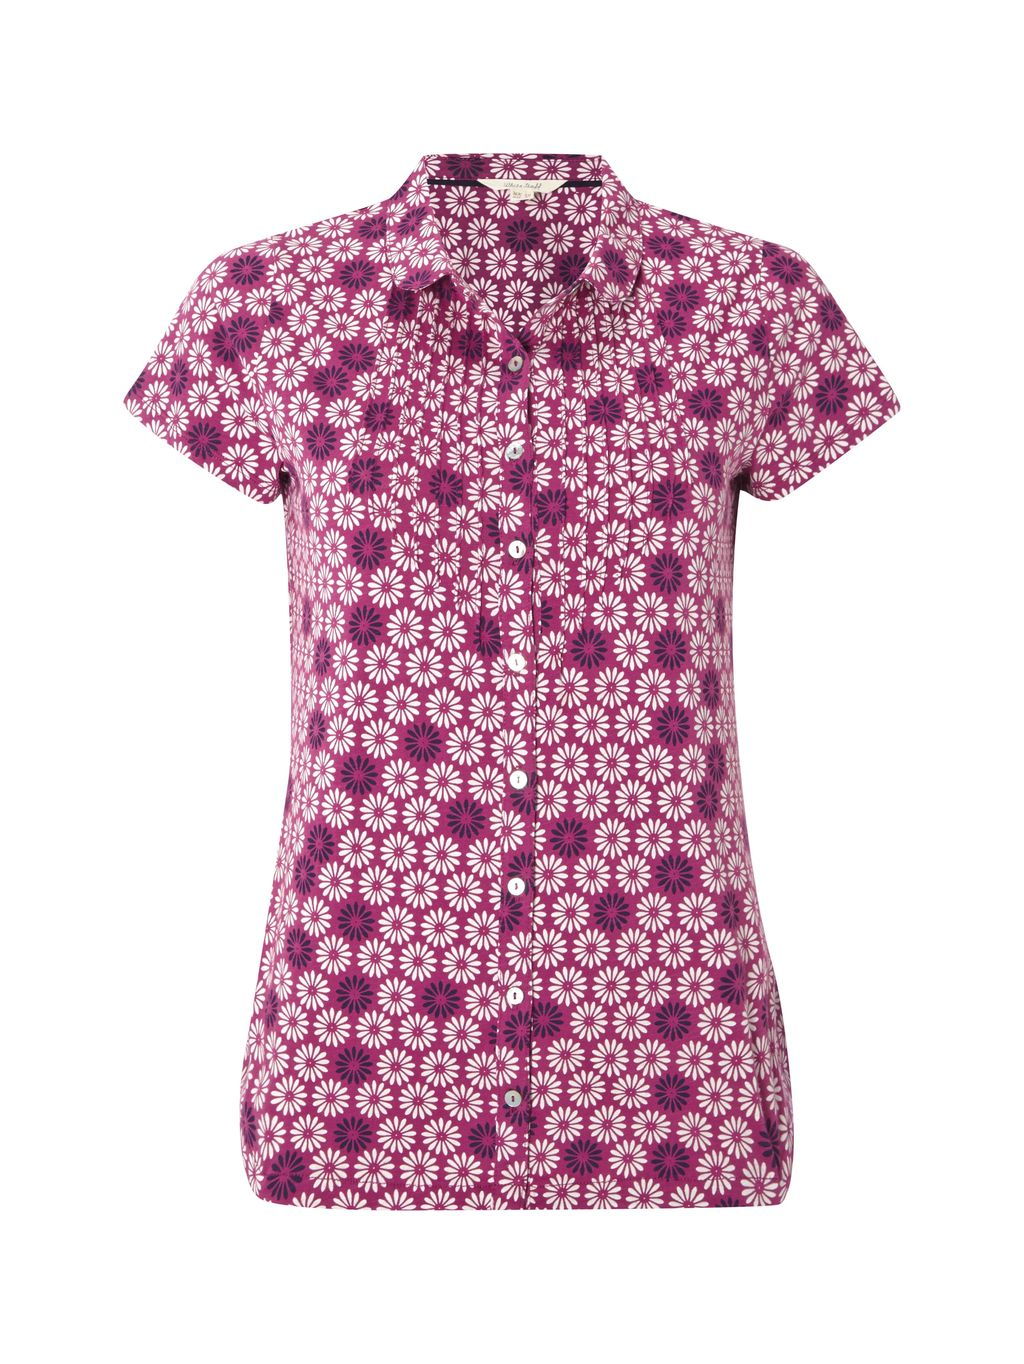 Daisy Jersey Shirt, Purple - neckline: shirt collar/peter pan/zip with opening; style: shirt; secondary colour: blush; predominant colour: hot pink; occasions: casual; length: standard; fibres: cotton - 100%; fit: body skimming; sleeve length: short sleeve; sleeve style: standard; texture group: cotton feel fabrics; pattern type: fabric; pattern: florals; multicoloured: multicoloured; season: s/s 2016; wardrobe: highlight